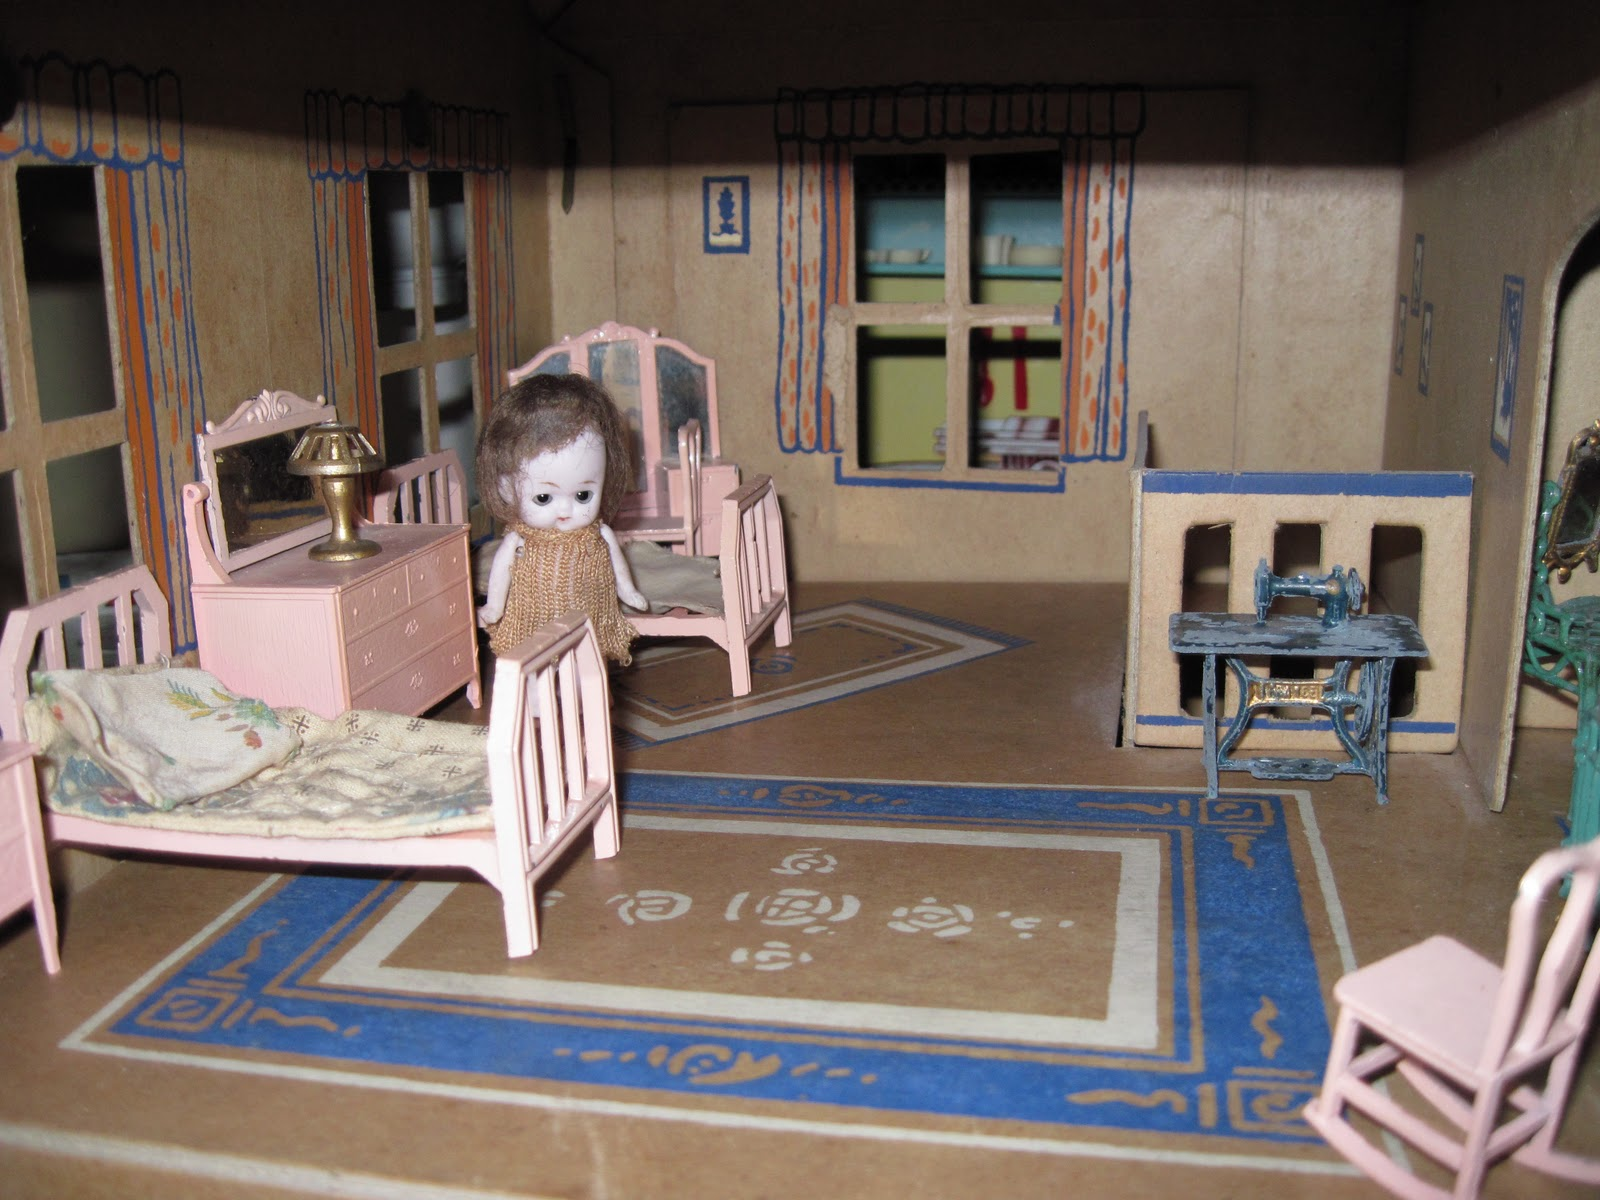 inexpensive dollhouse furniture. The Little 2 3/4 Inch Doll Was Original To House, And Is Of A Type Often Referred As \ Inexpensive Dollhouse Furniture